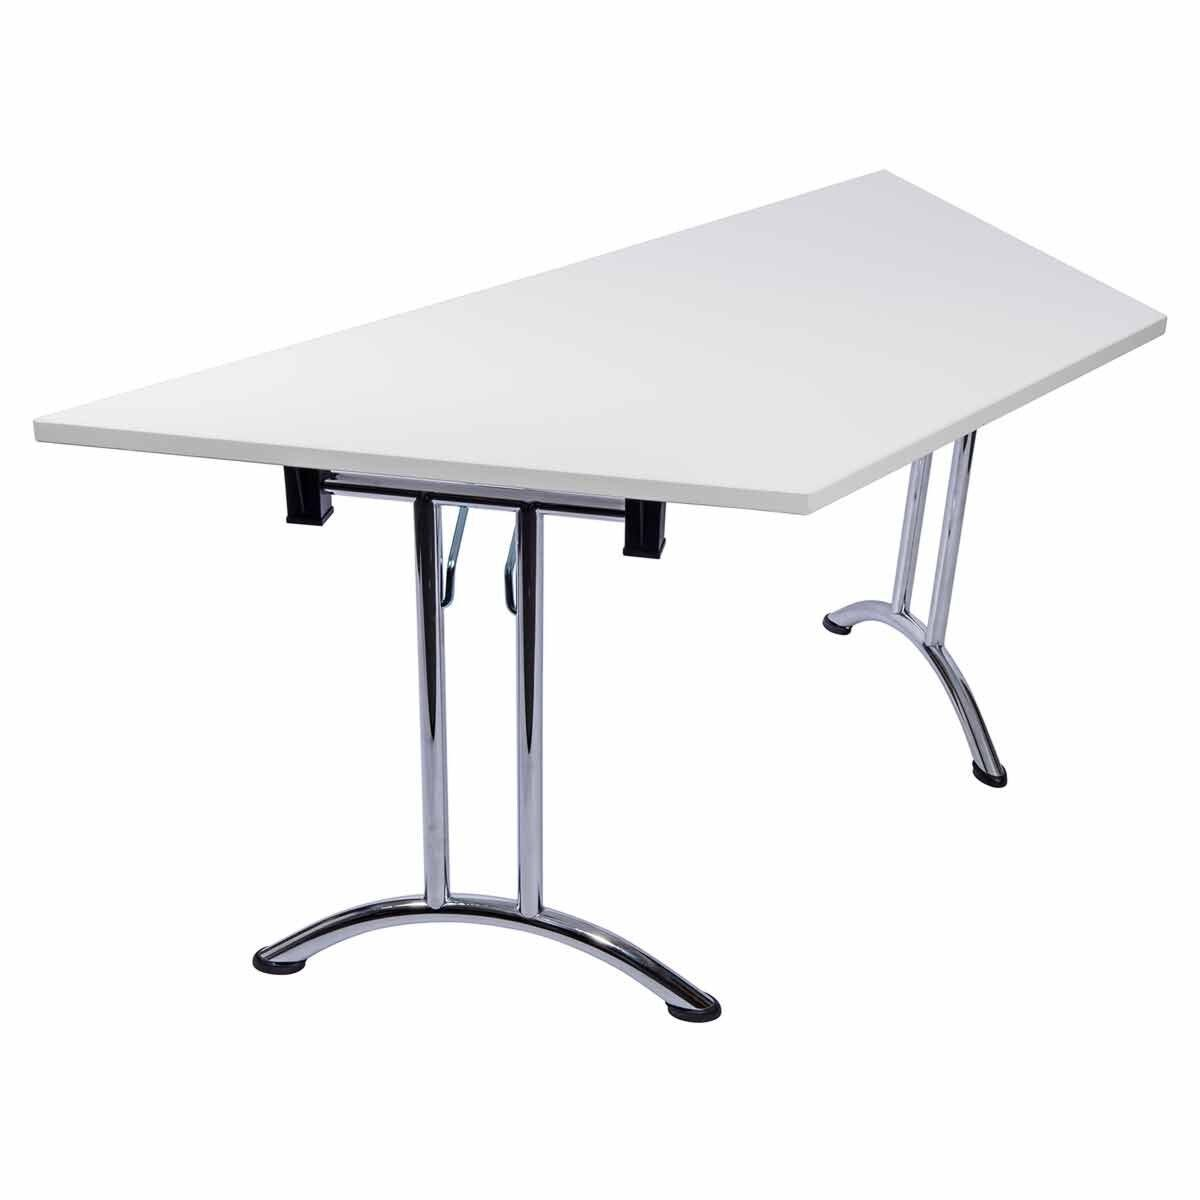 Tabilo Trapezium Folding Table Frame with Curved Chrome Frame 1600 x 800mm White